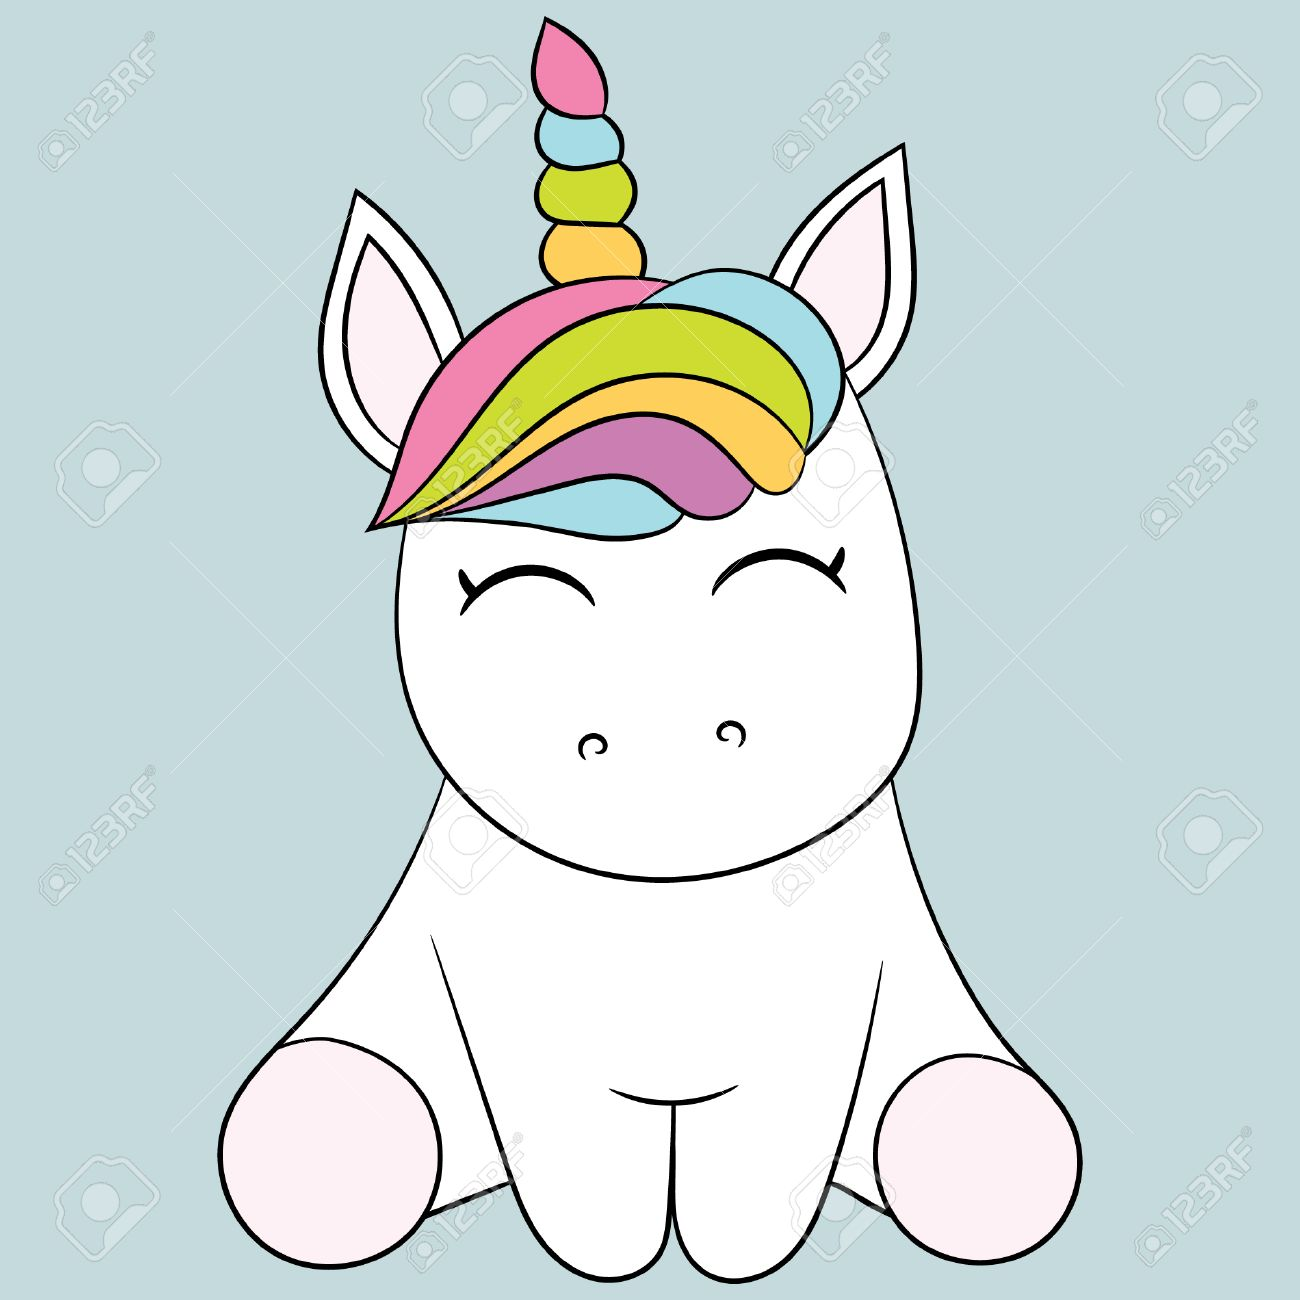 Childrens Illustration With A Cute Unicorn Best Choice For Cards Invitations Prints Or